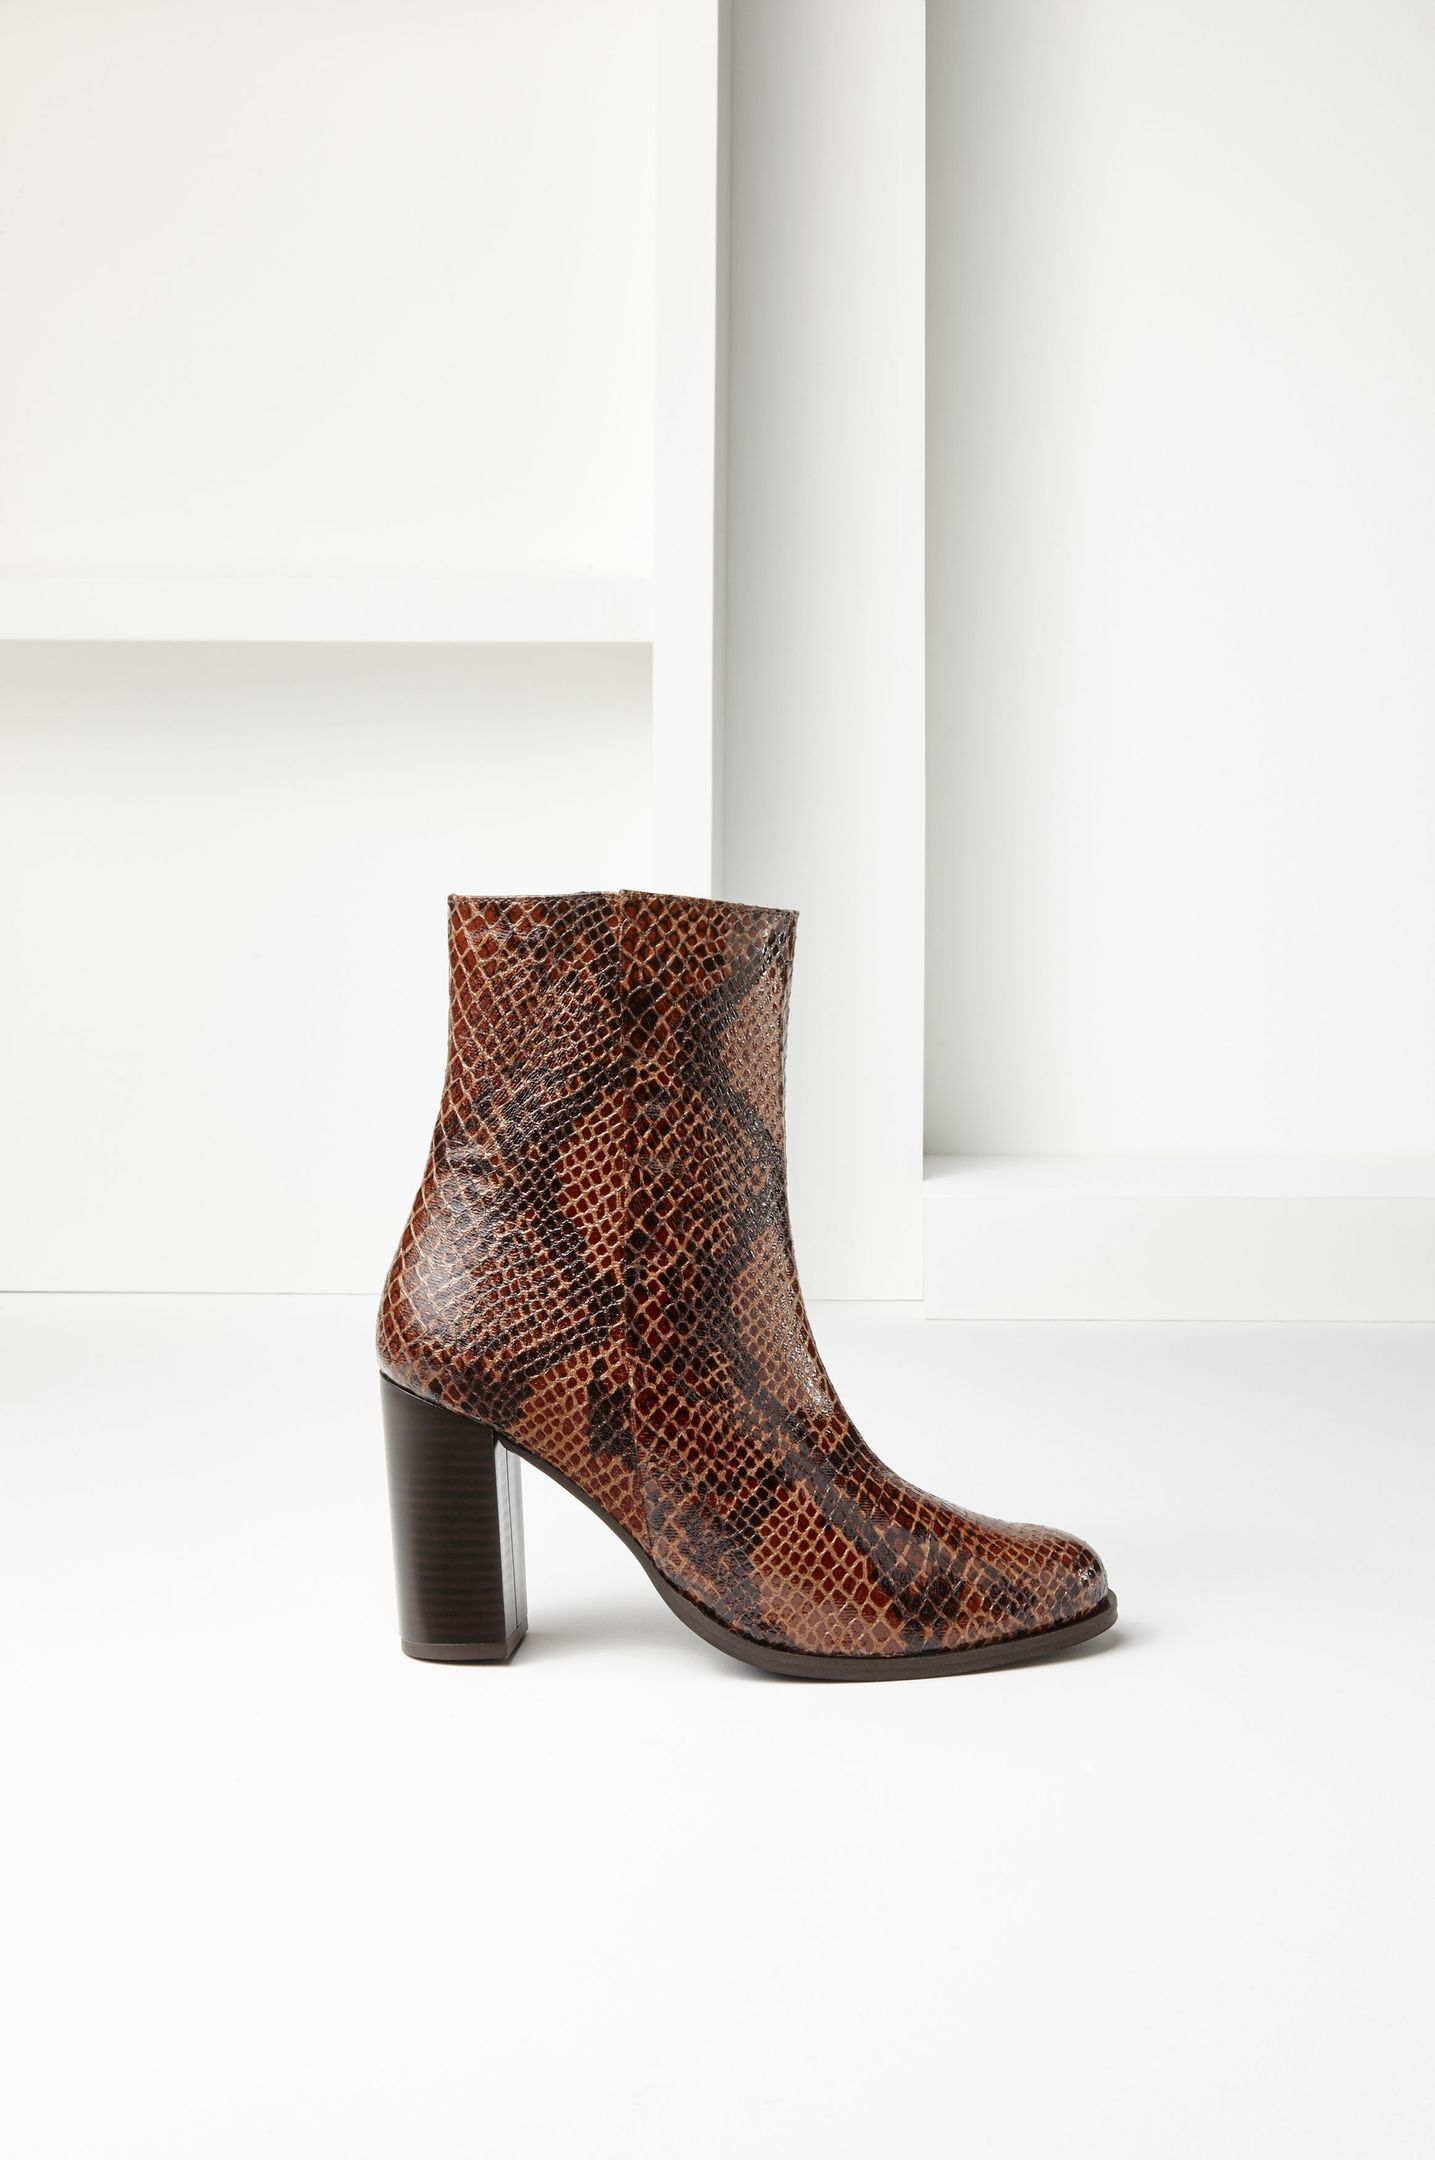 La Redoute Atelier R Python Leather Boots, available from laredoute.co.uk.